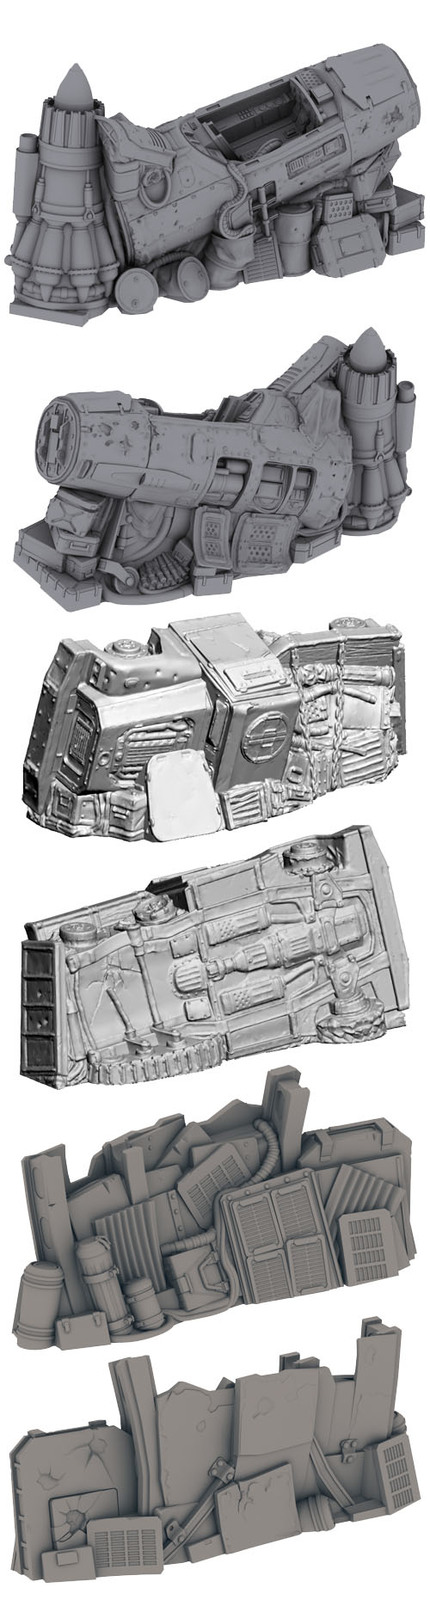 Secret Weapon Terrain: Scrap Yard - Junk Walls image